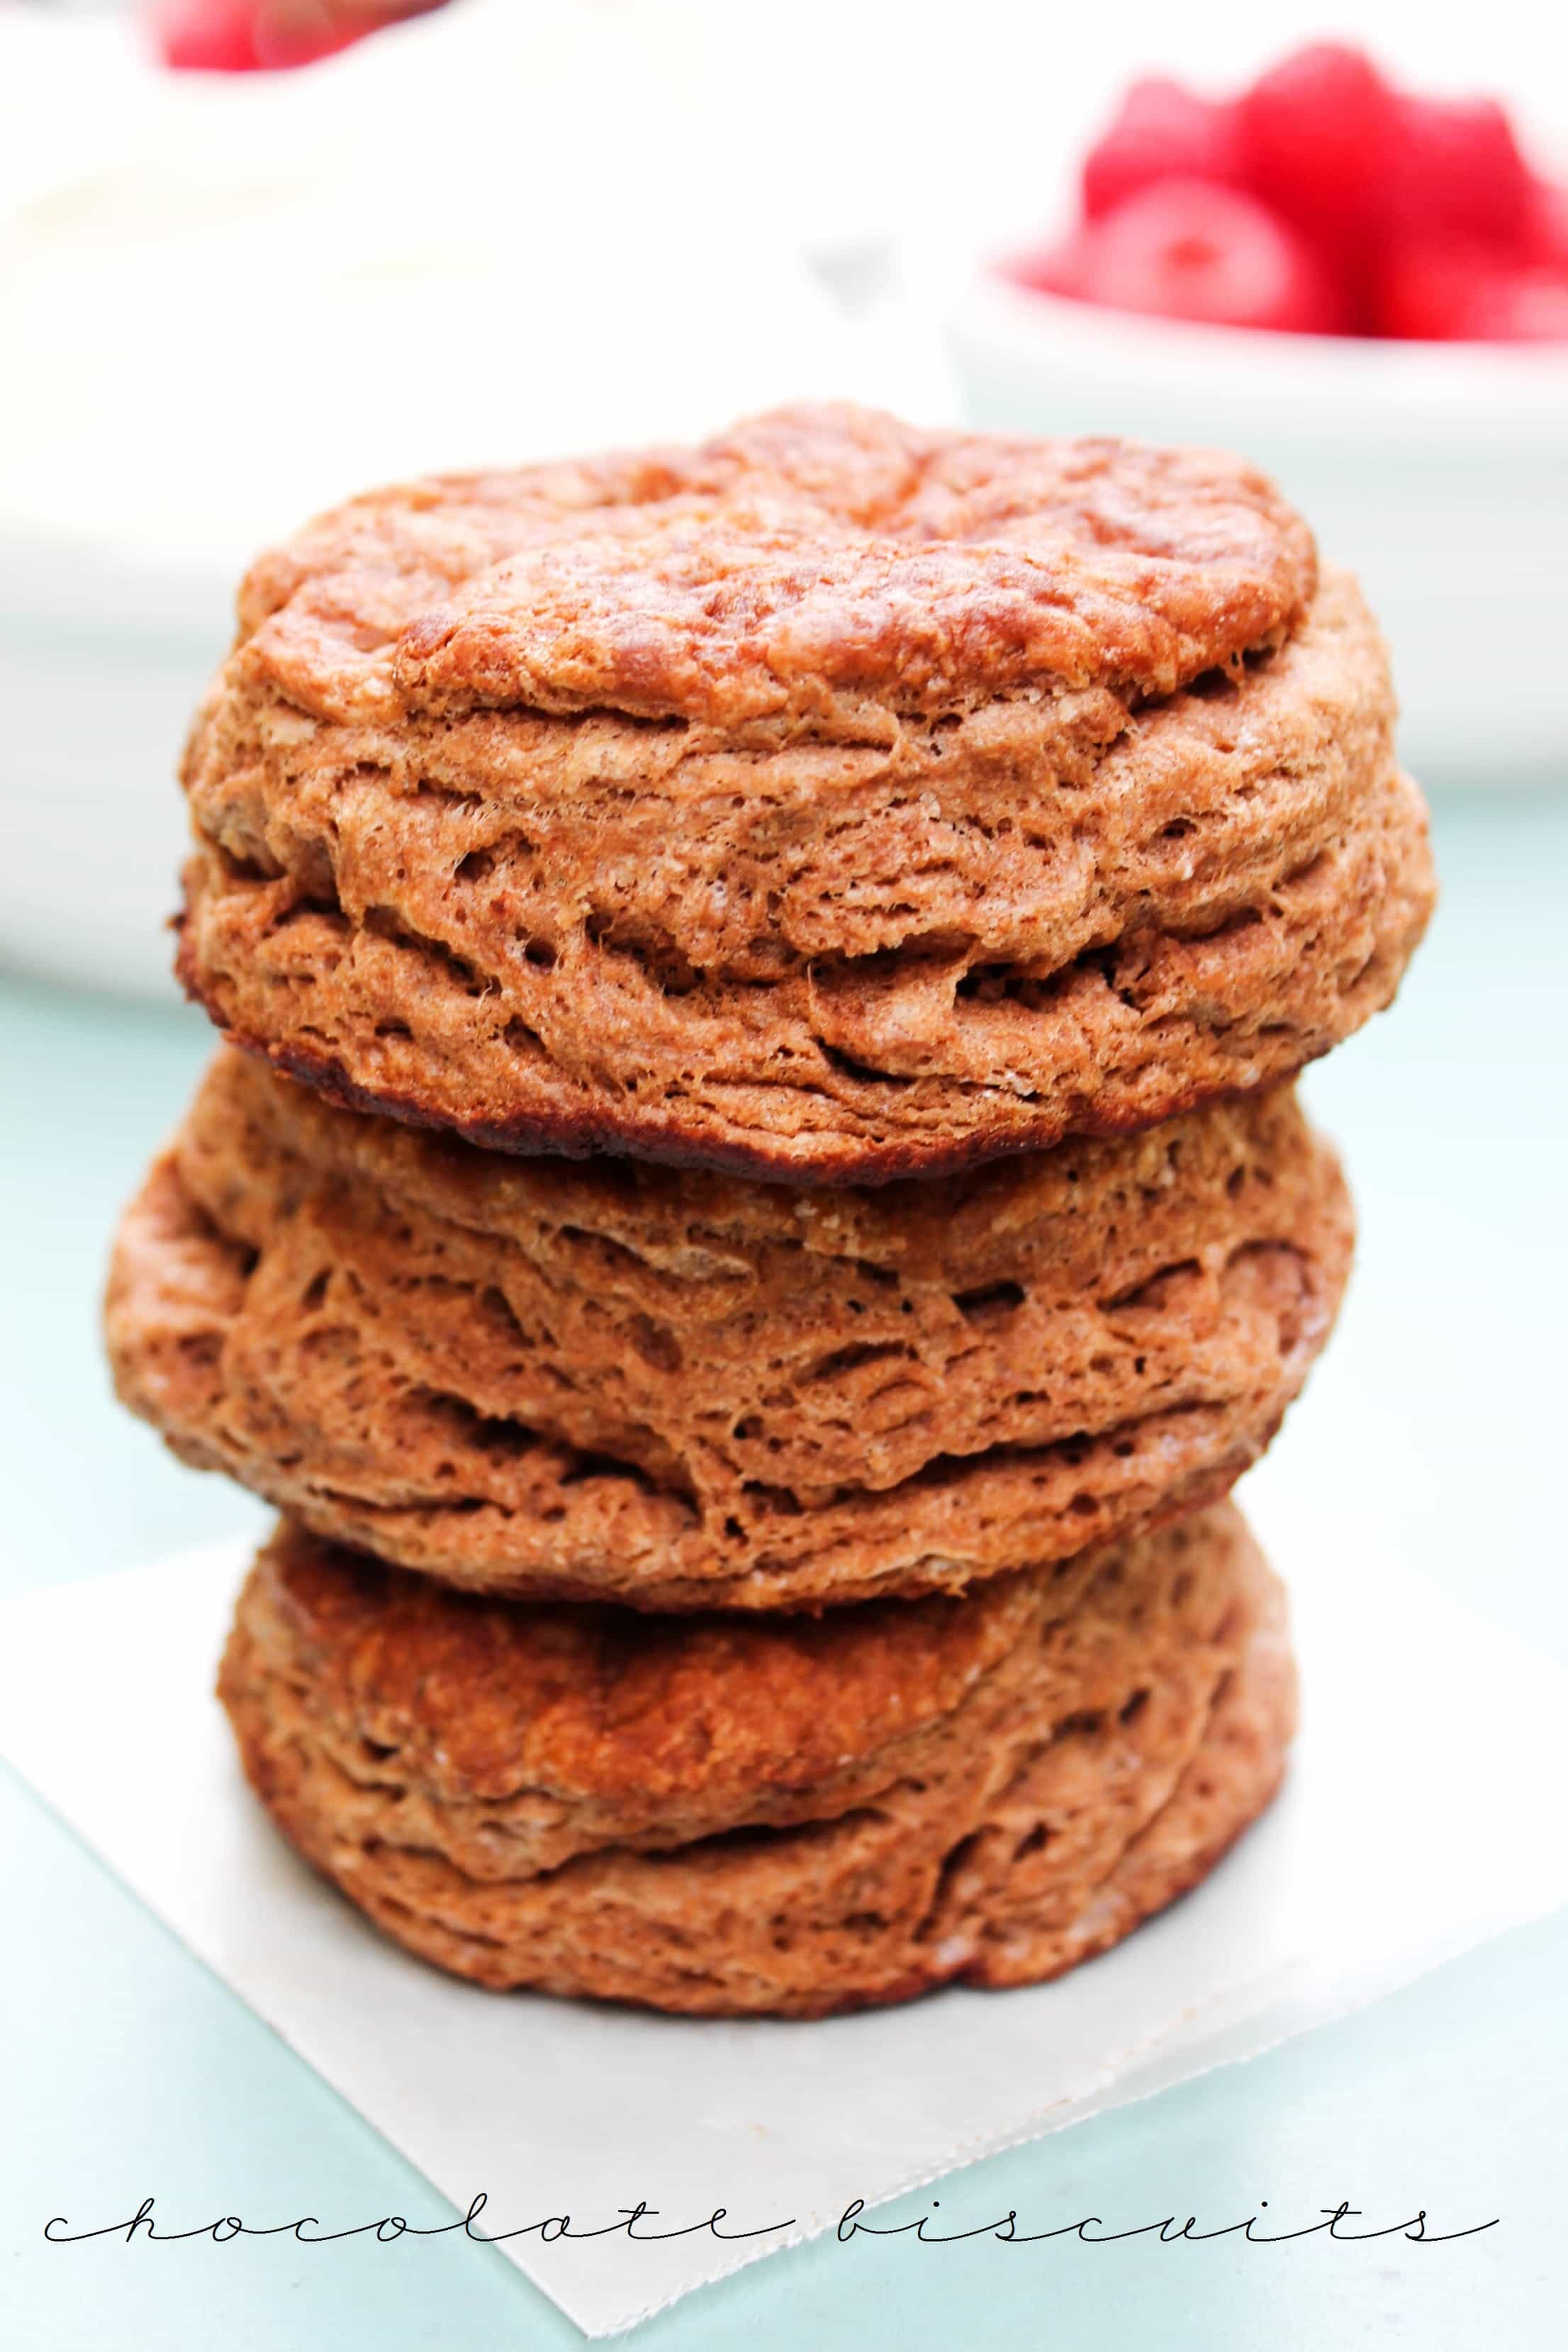 These Chocolate Biscuits made with butter and raspberry jam make breakfast more like dessert.Top with whipped cream and you'll have a perfect treat.